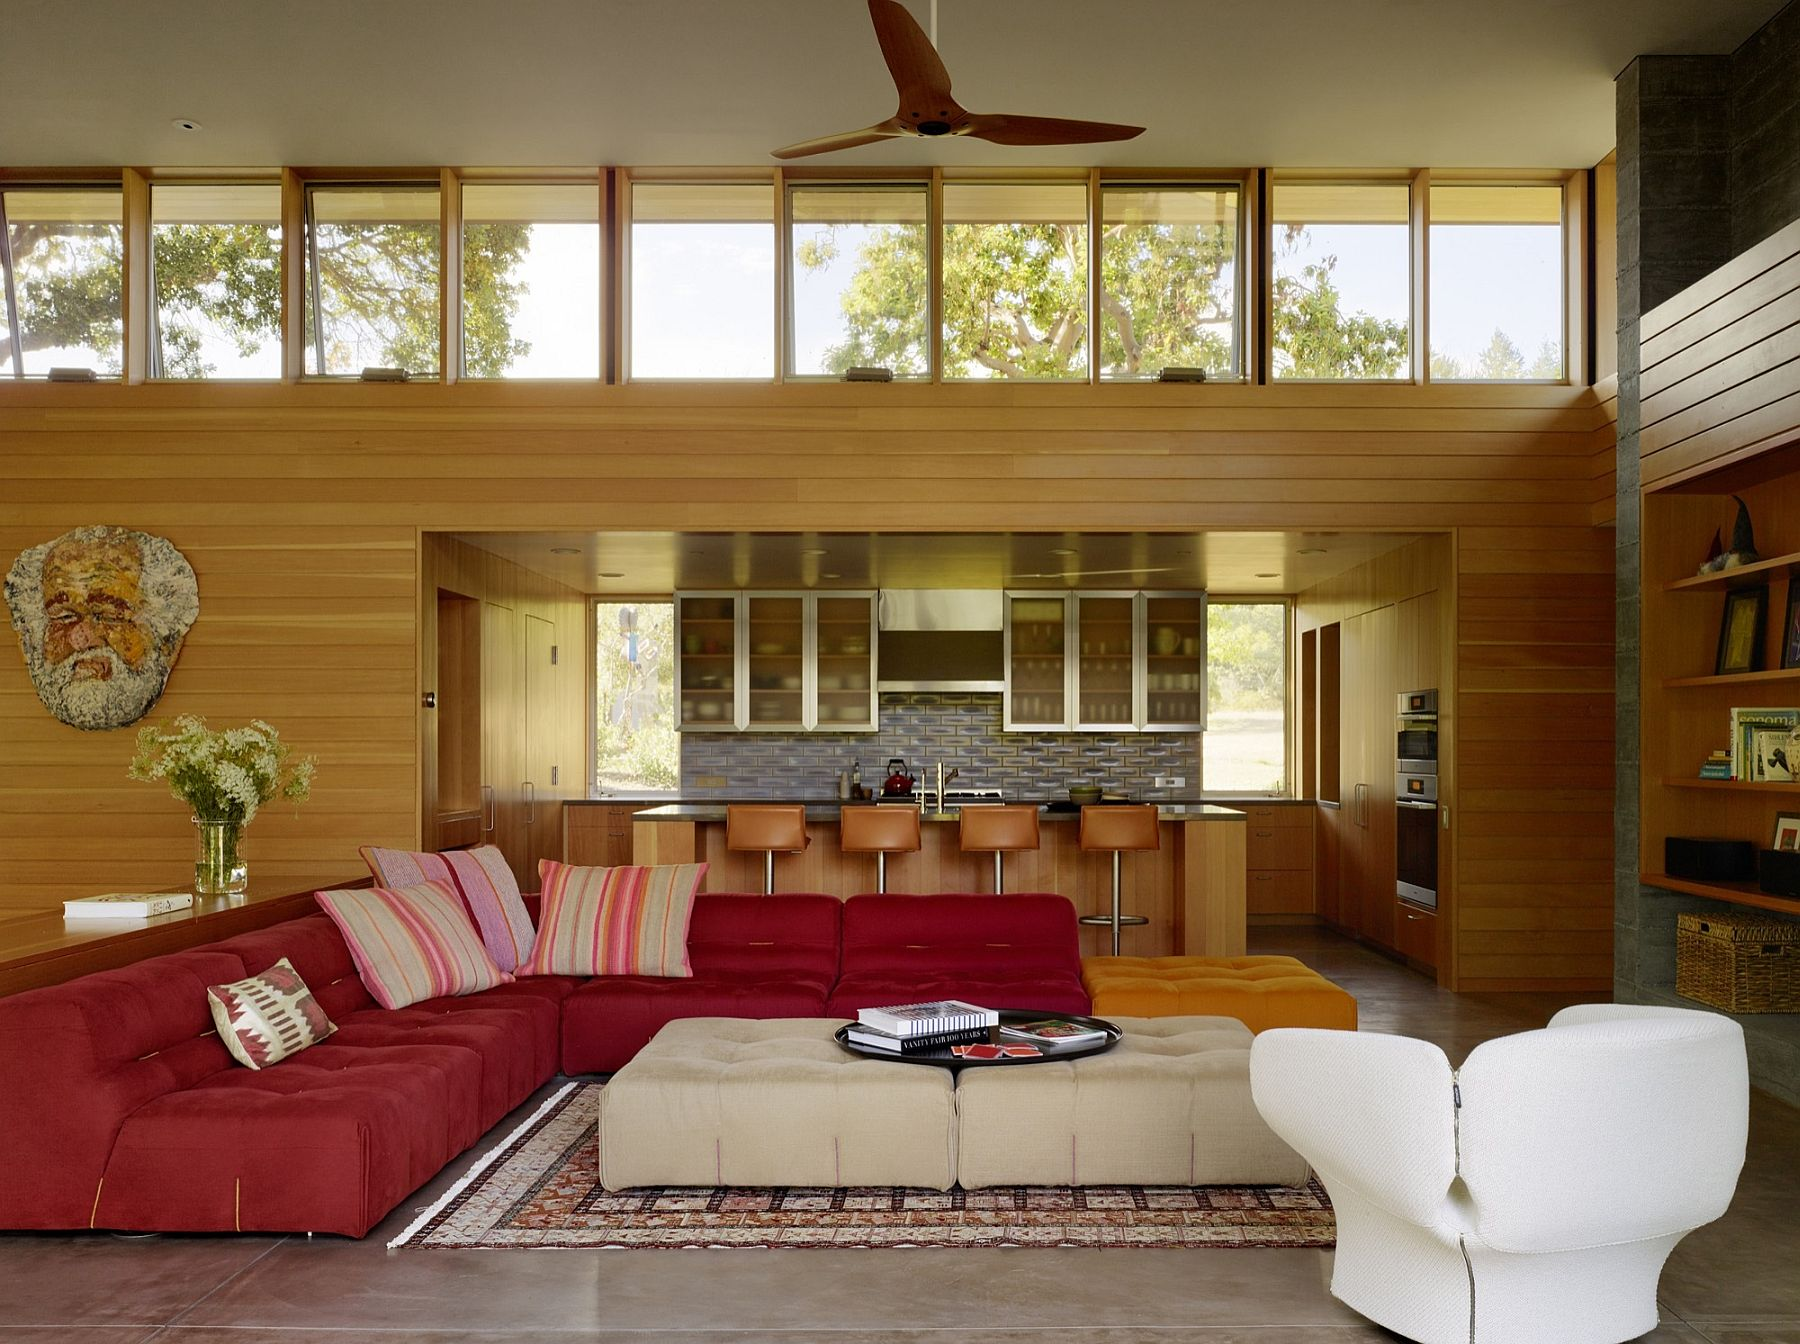 Double height living room with a striking red sectional at its heart